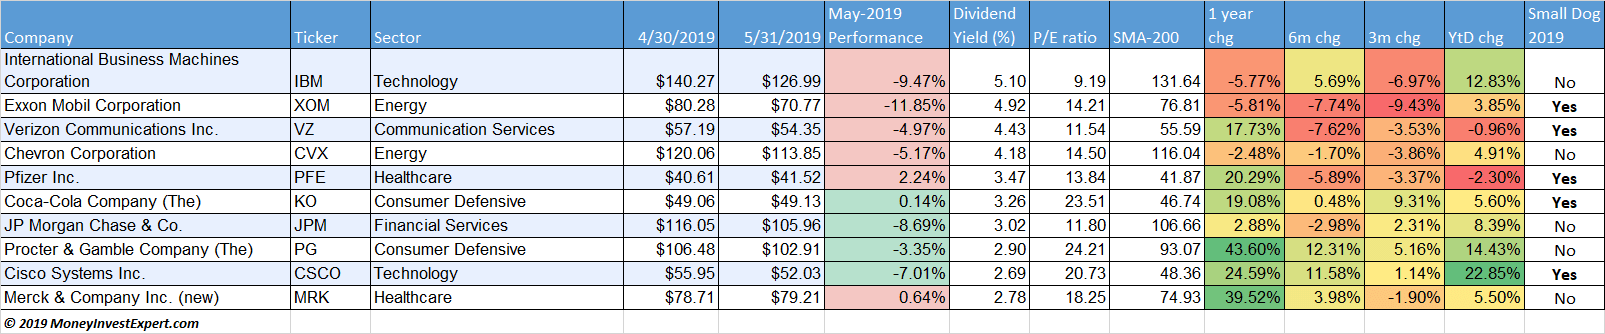 Performance dogs of the dow 2019